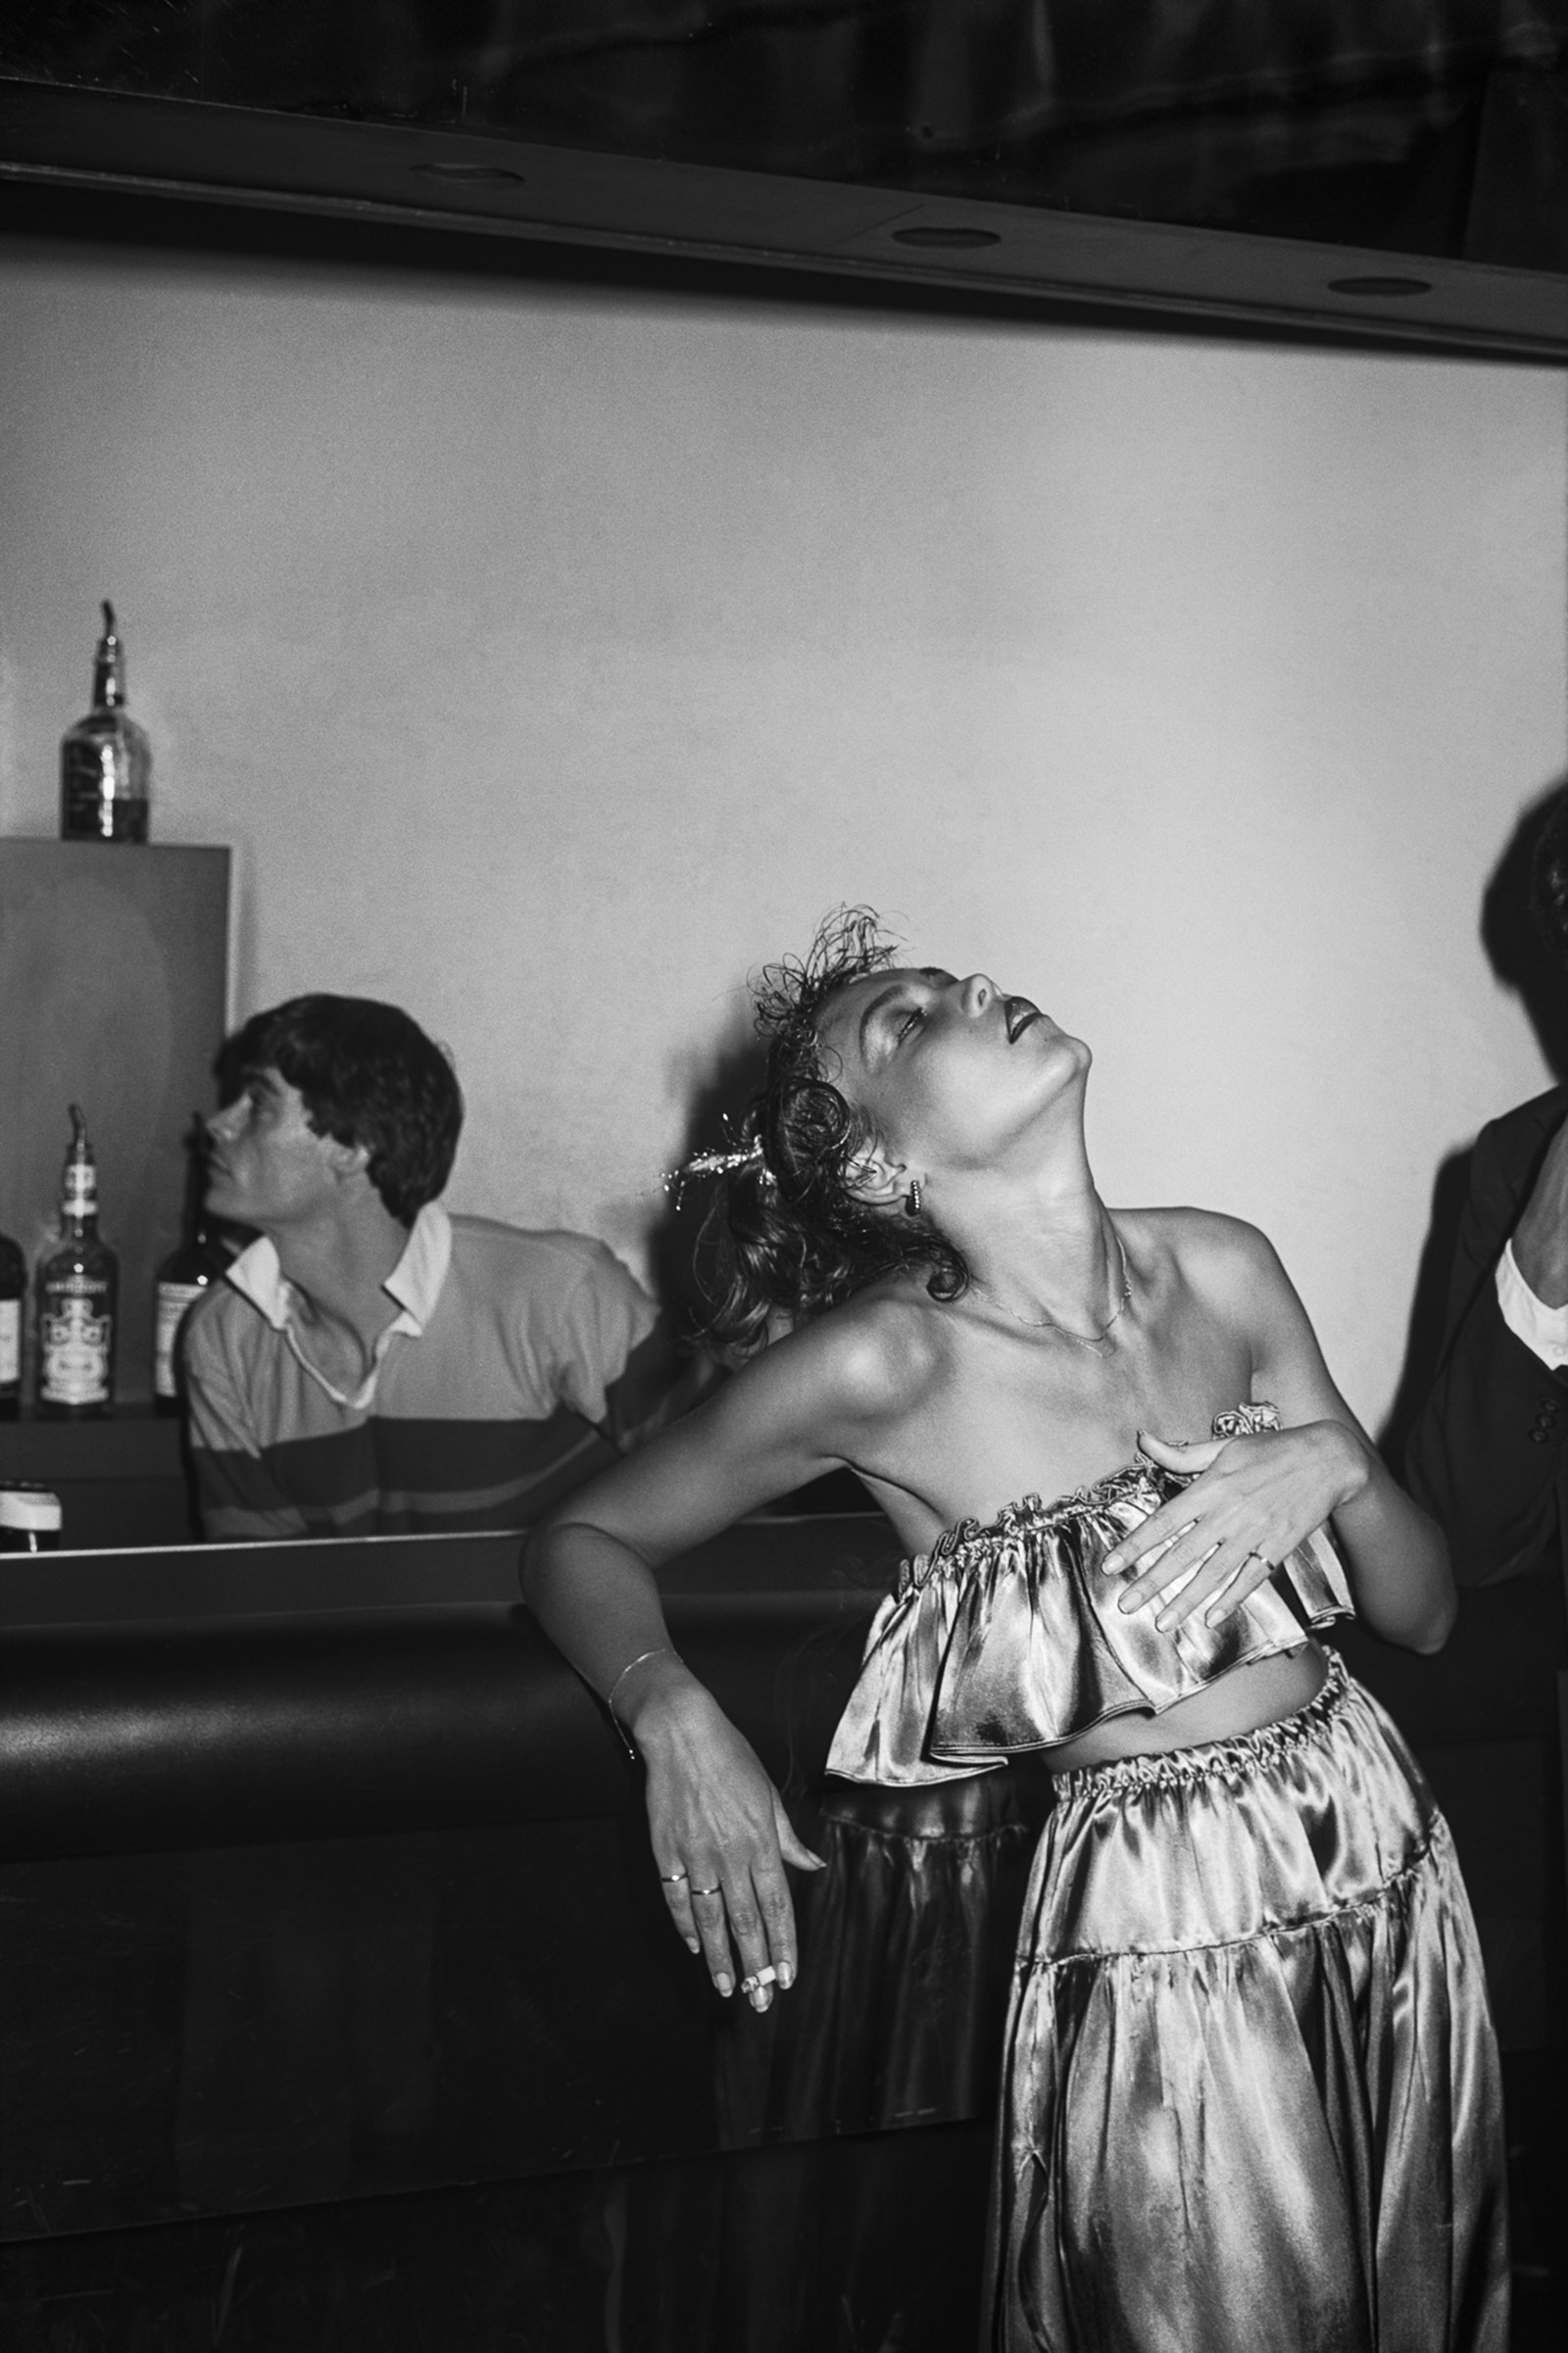 .  . 1979.    54.  19781980.  Tod Papageorge courtesy Galerie Thomas Zander Cologne